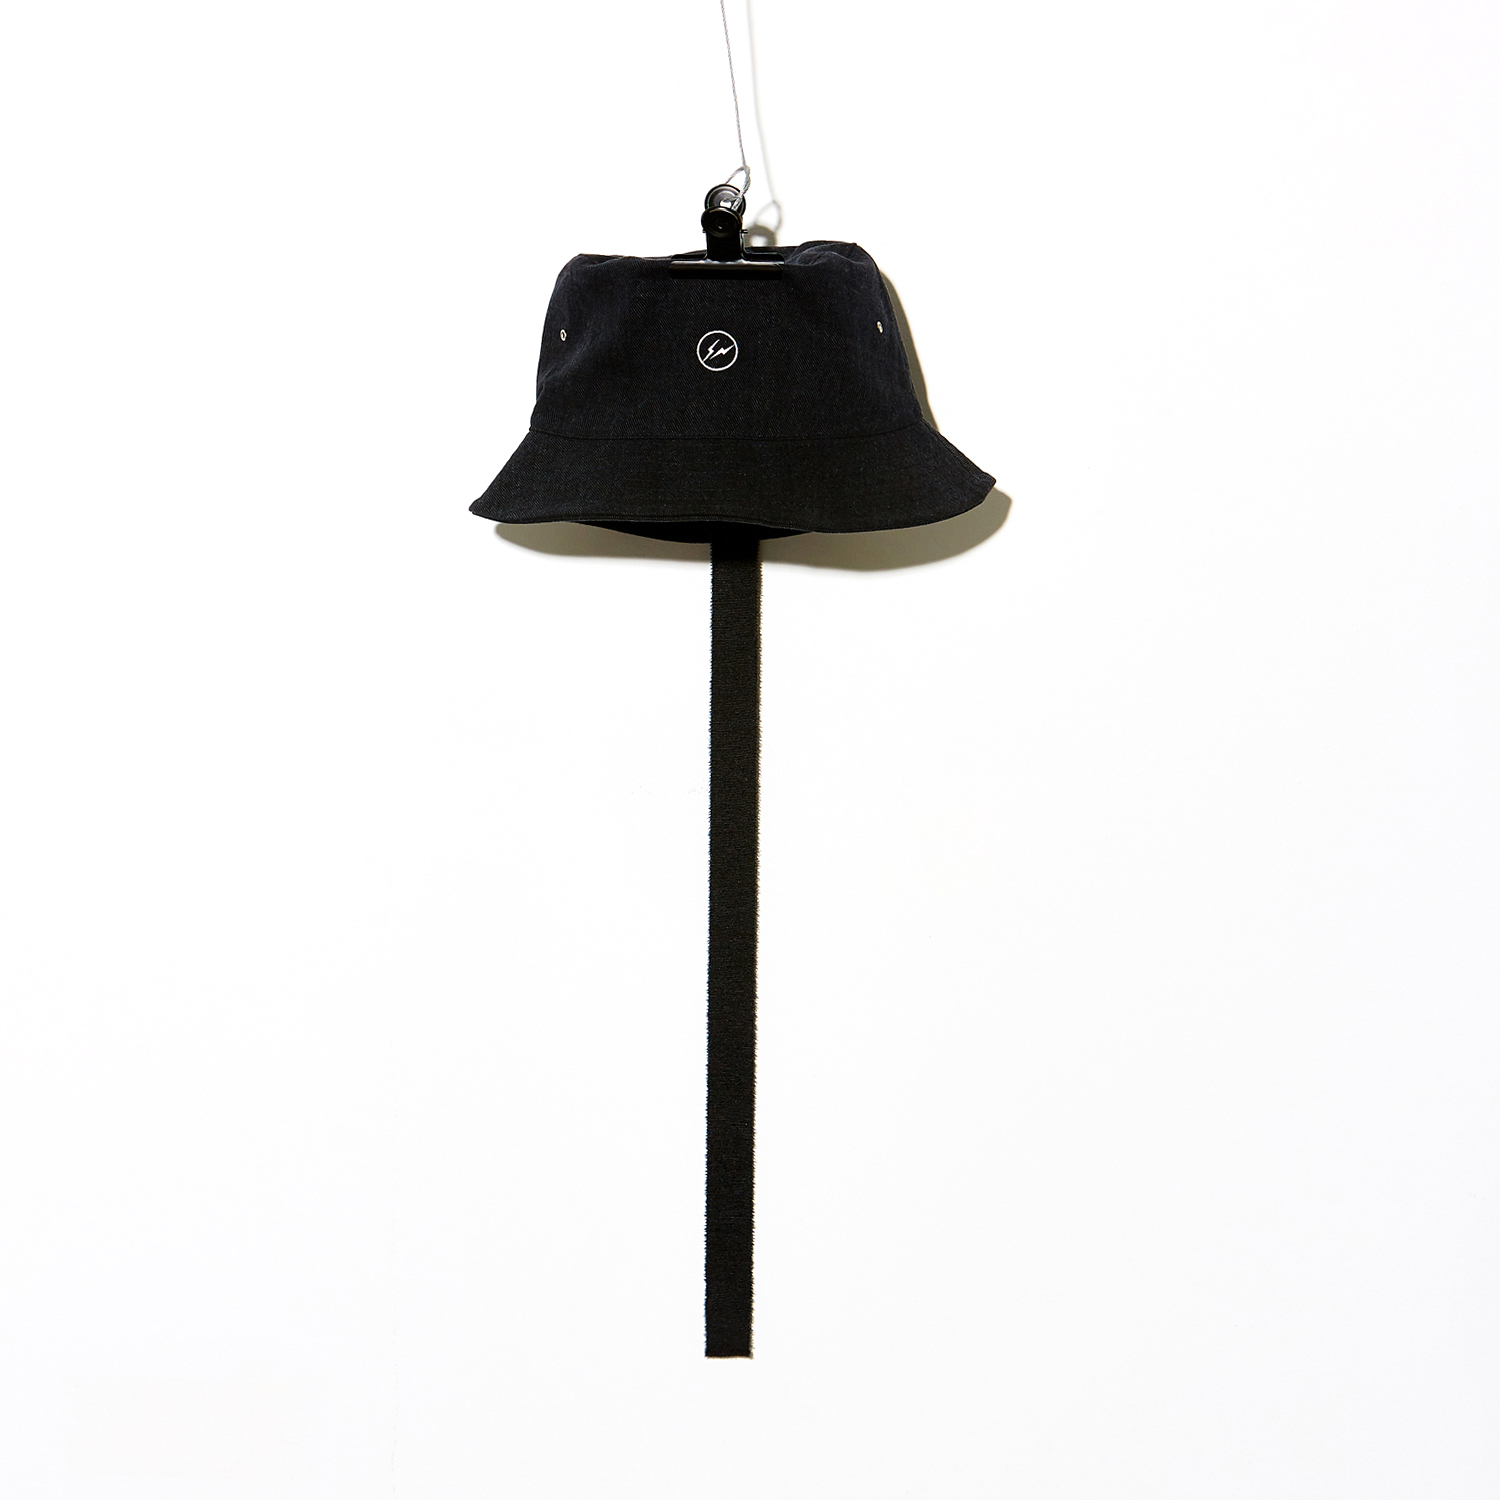 PEACEMINUSONE X FRAGMENT DESIGN. BUCKET HAT #1